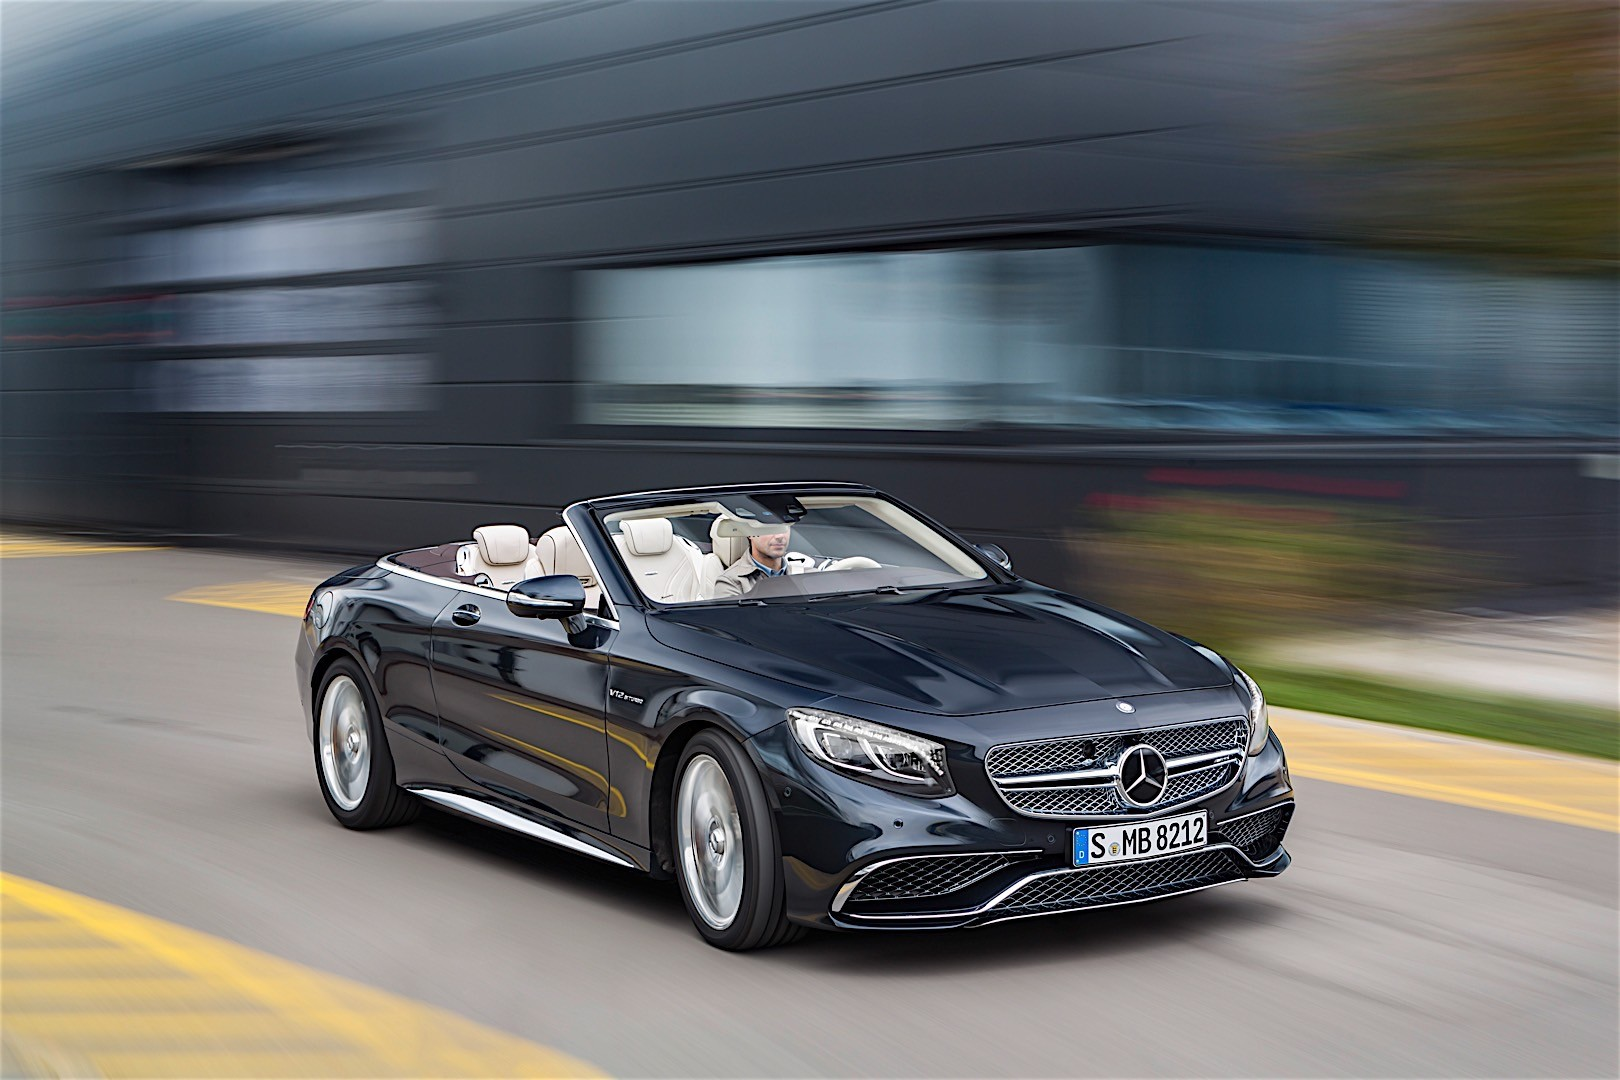 mercedes amg s65 cabriolet rounds off affalterbach s v12 offering to five models autoevolution. Black Bedroom Furniture Sets. Home Design Ideas